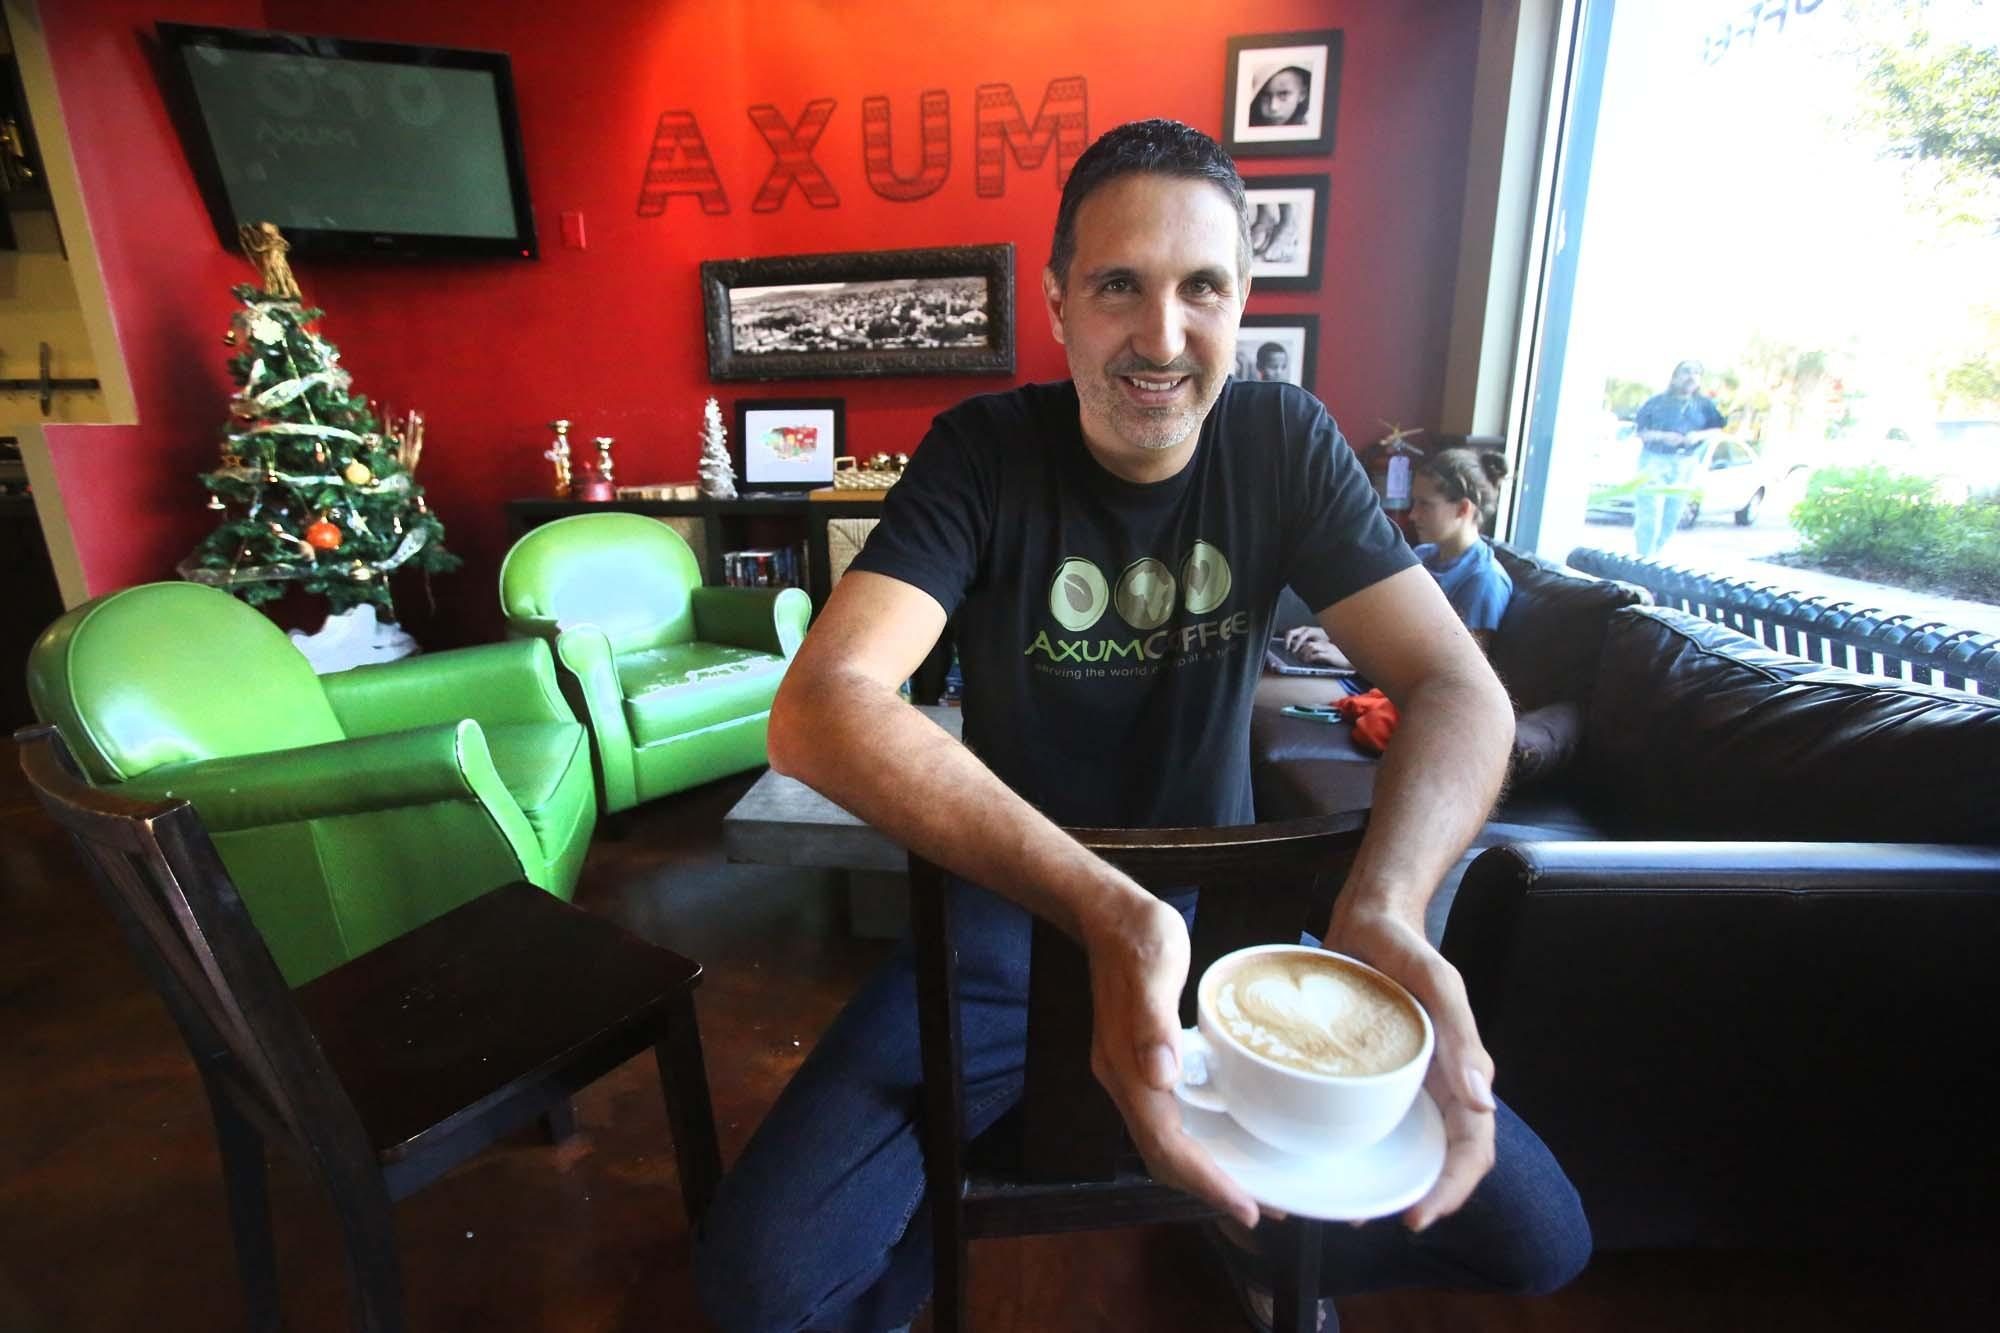 pastor hopes his coffee house can change the world